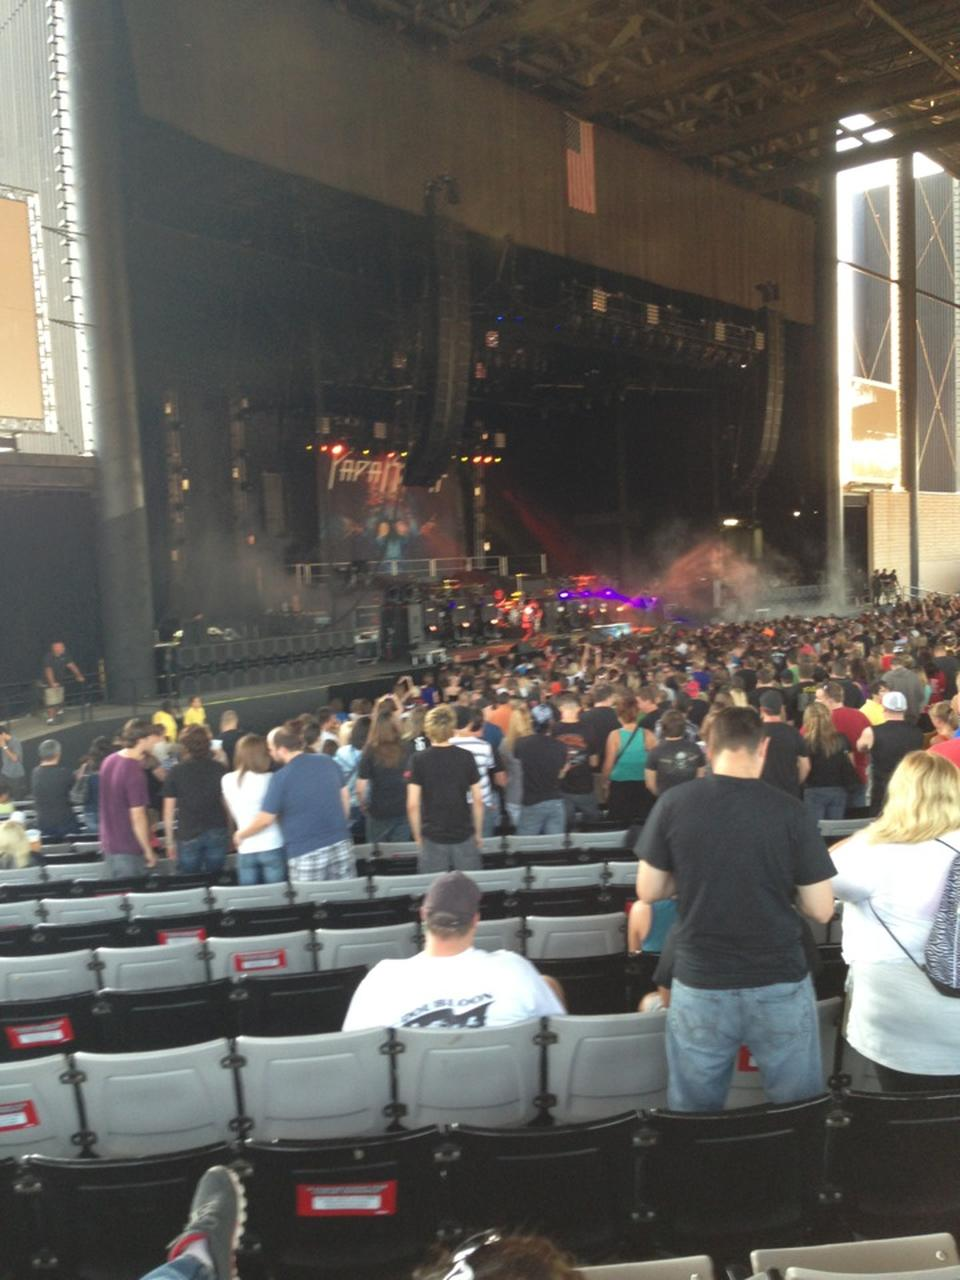 Hollywood Casino Amphitheatre Tinley Park Il Section 105